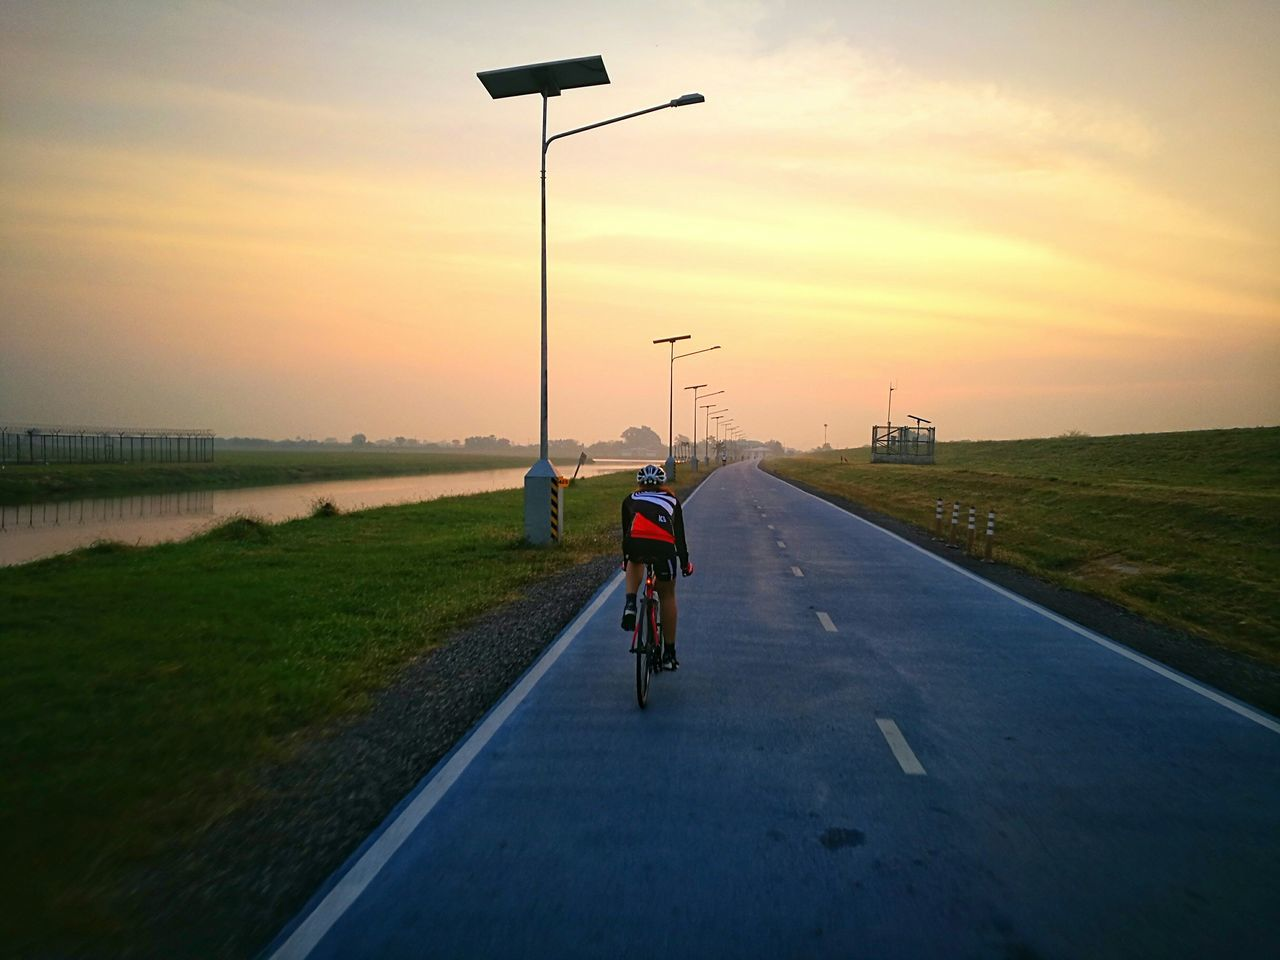 Sunset Bicycle Transportation People Street Light Outdoors Sky Day Nature